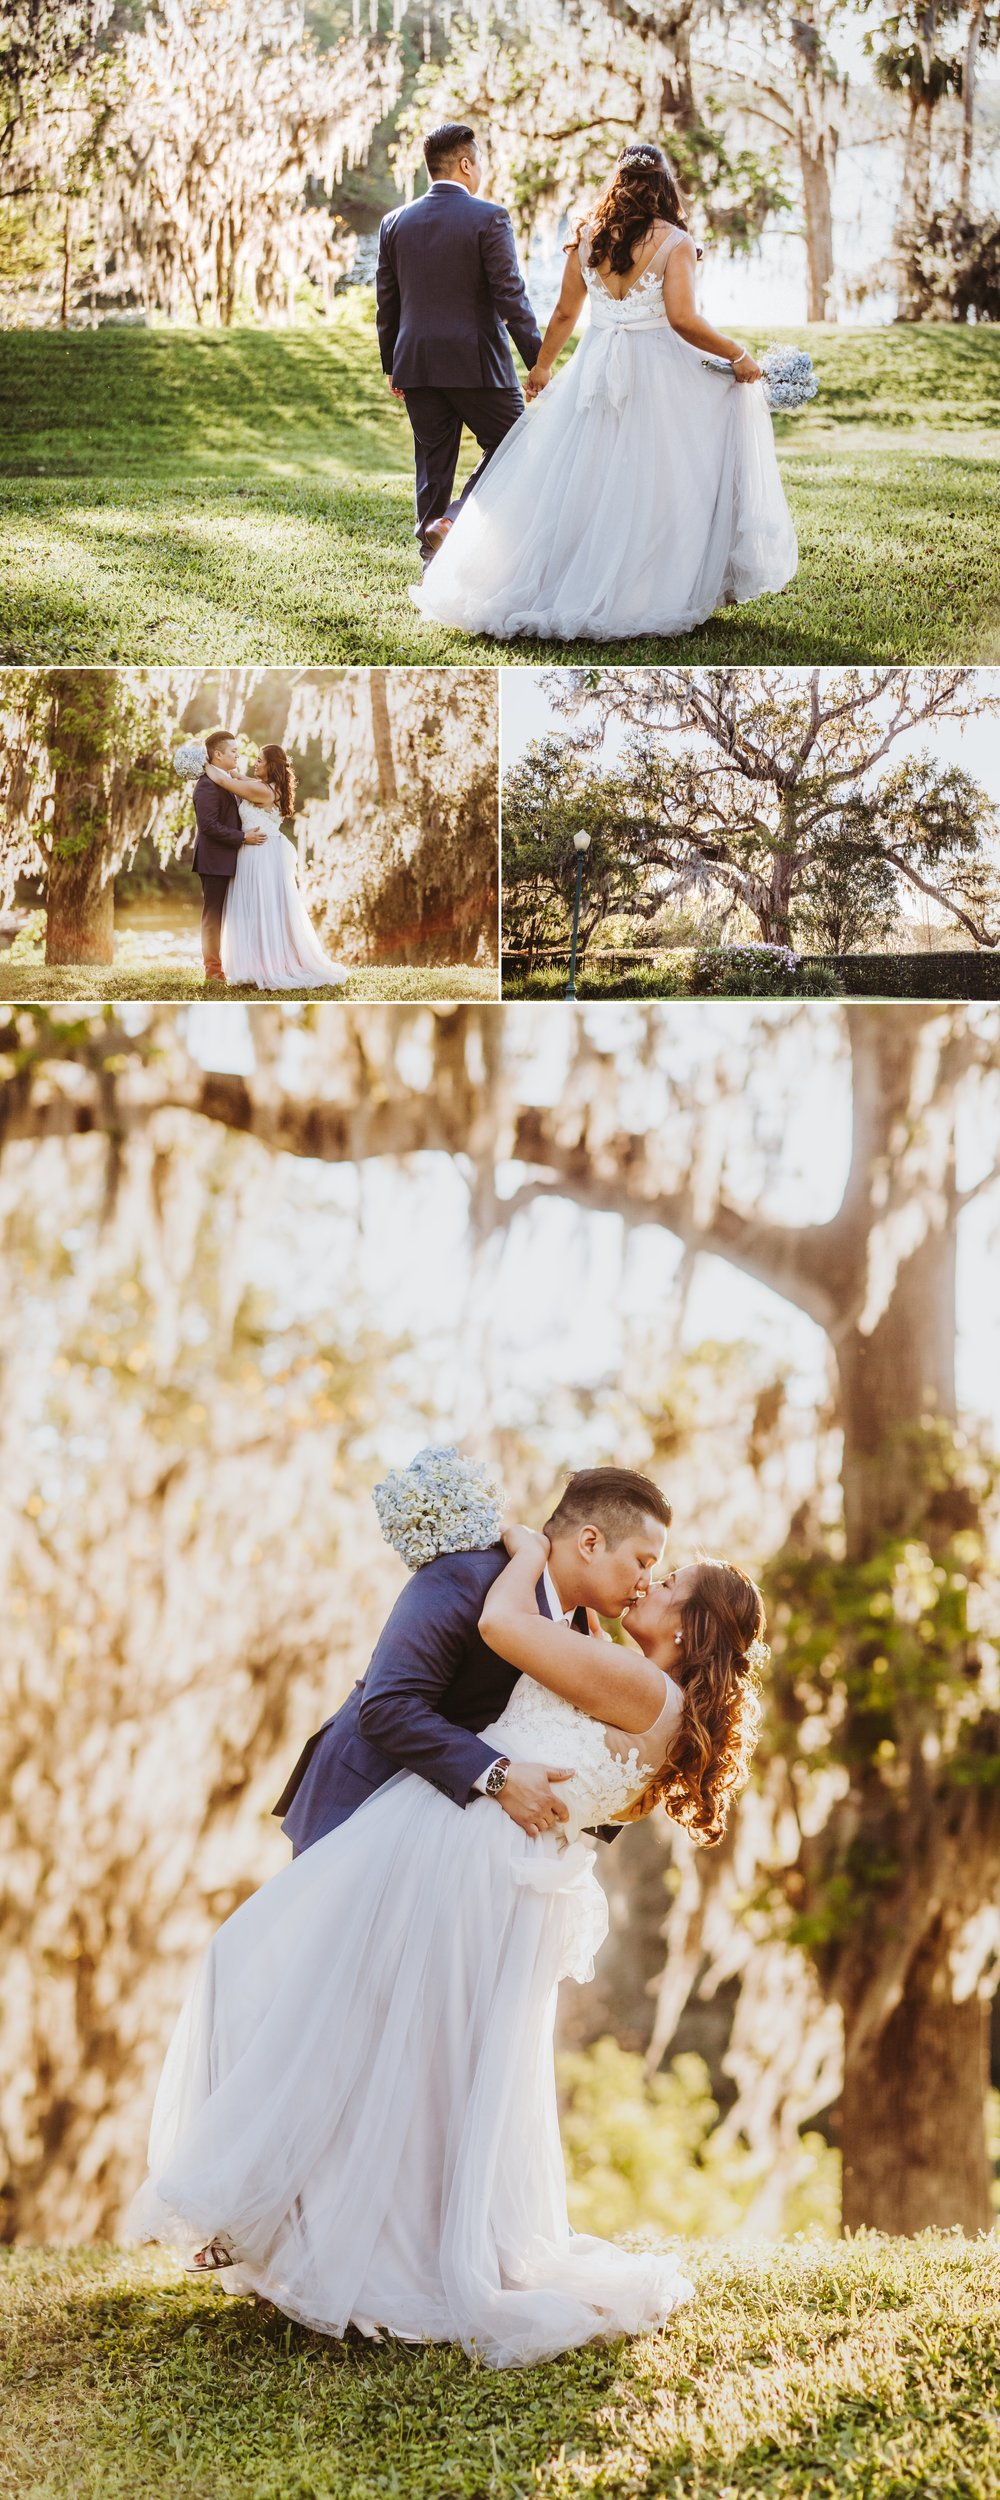 Romantic Leu Gardens Wedding Pictures - Winter Park Wedding Photographer Shaina DeCiryan- Effie+Phillip10.jpg